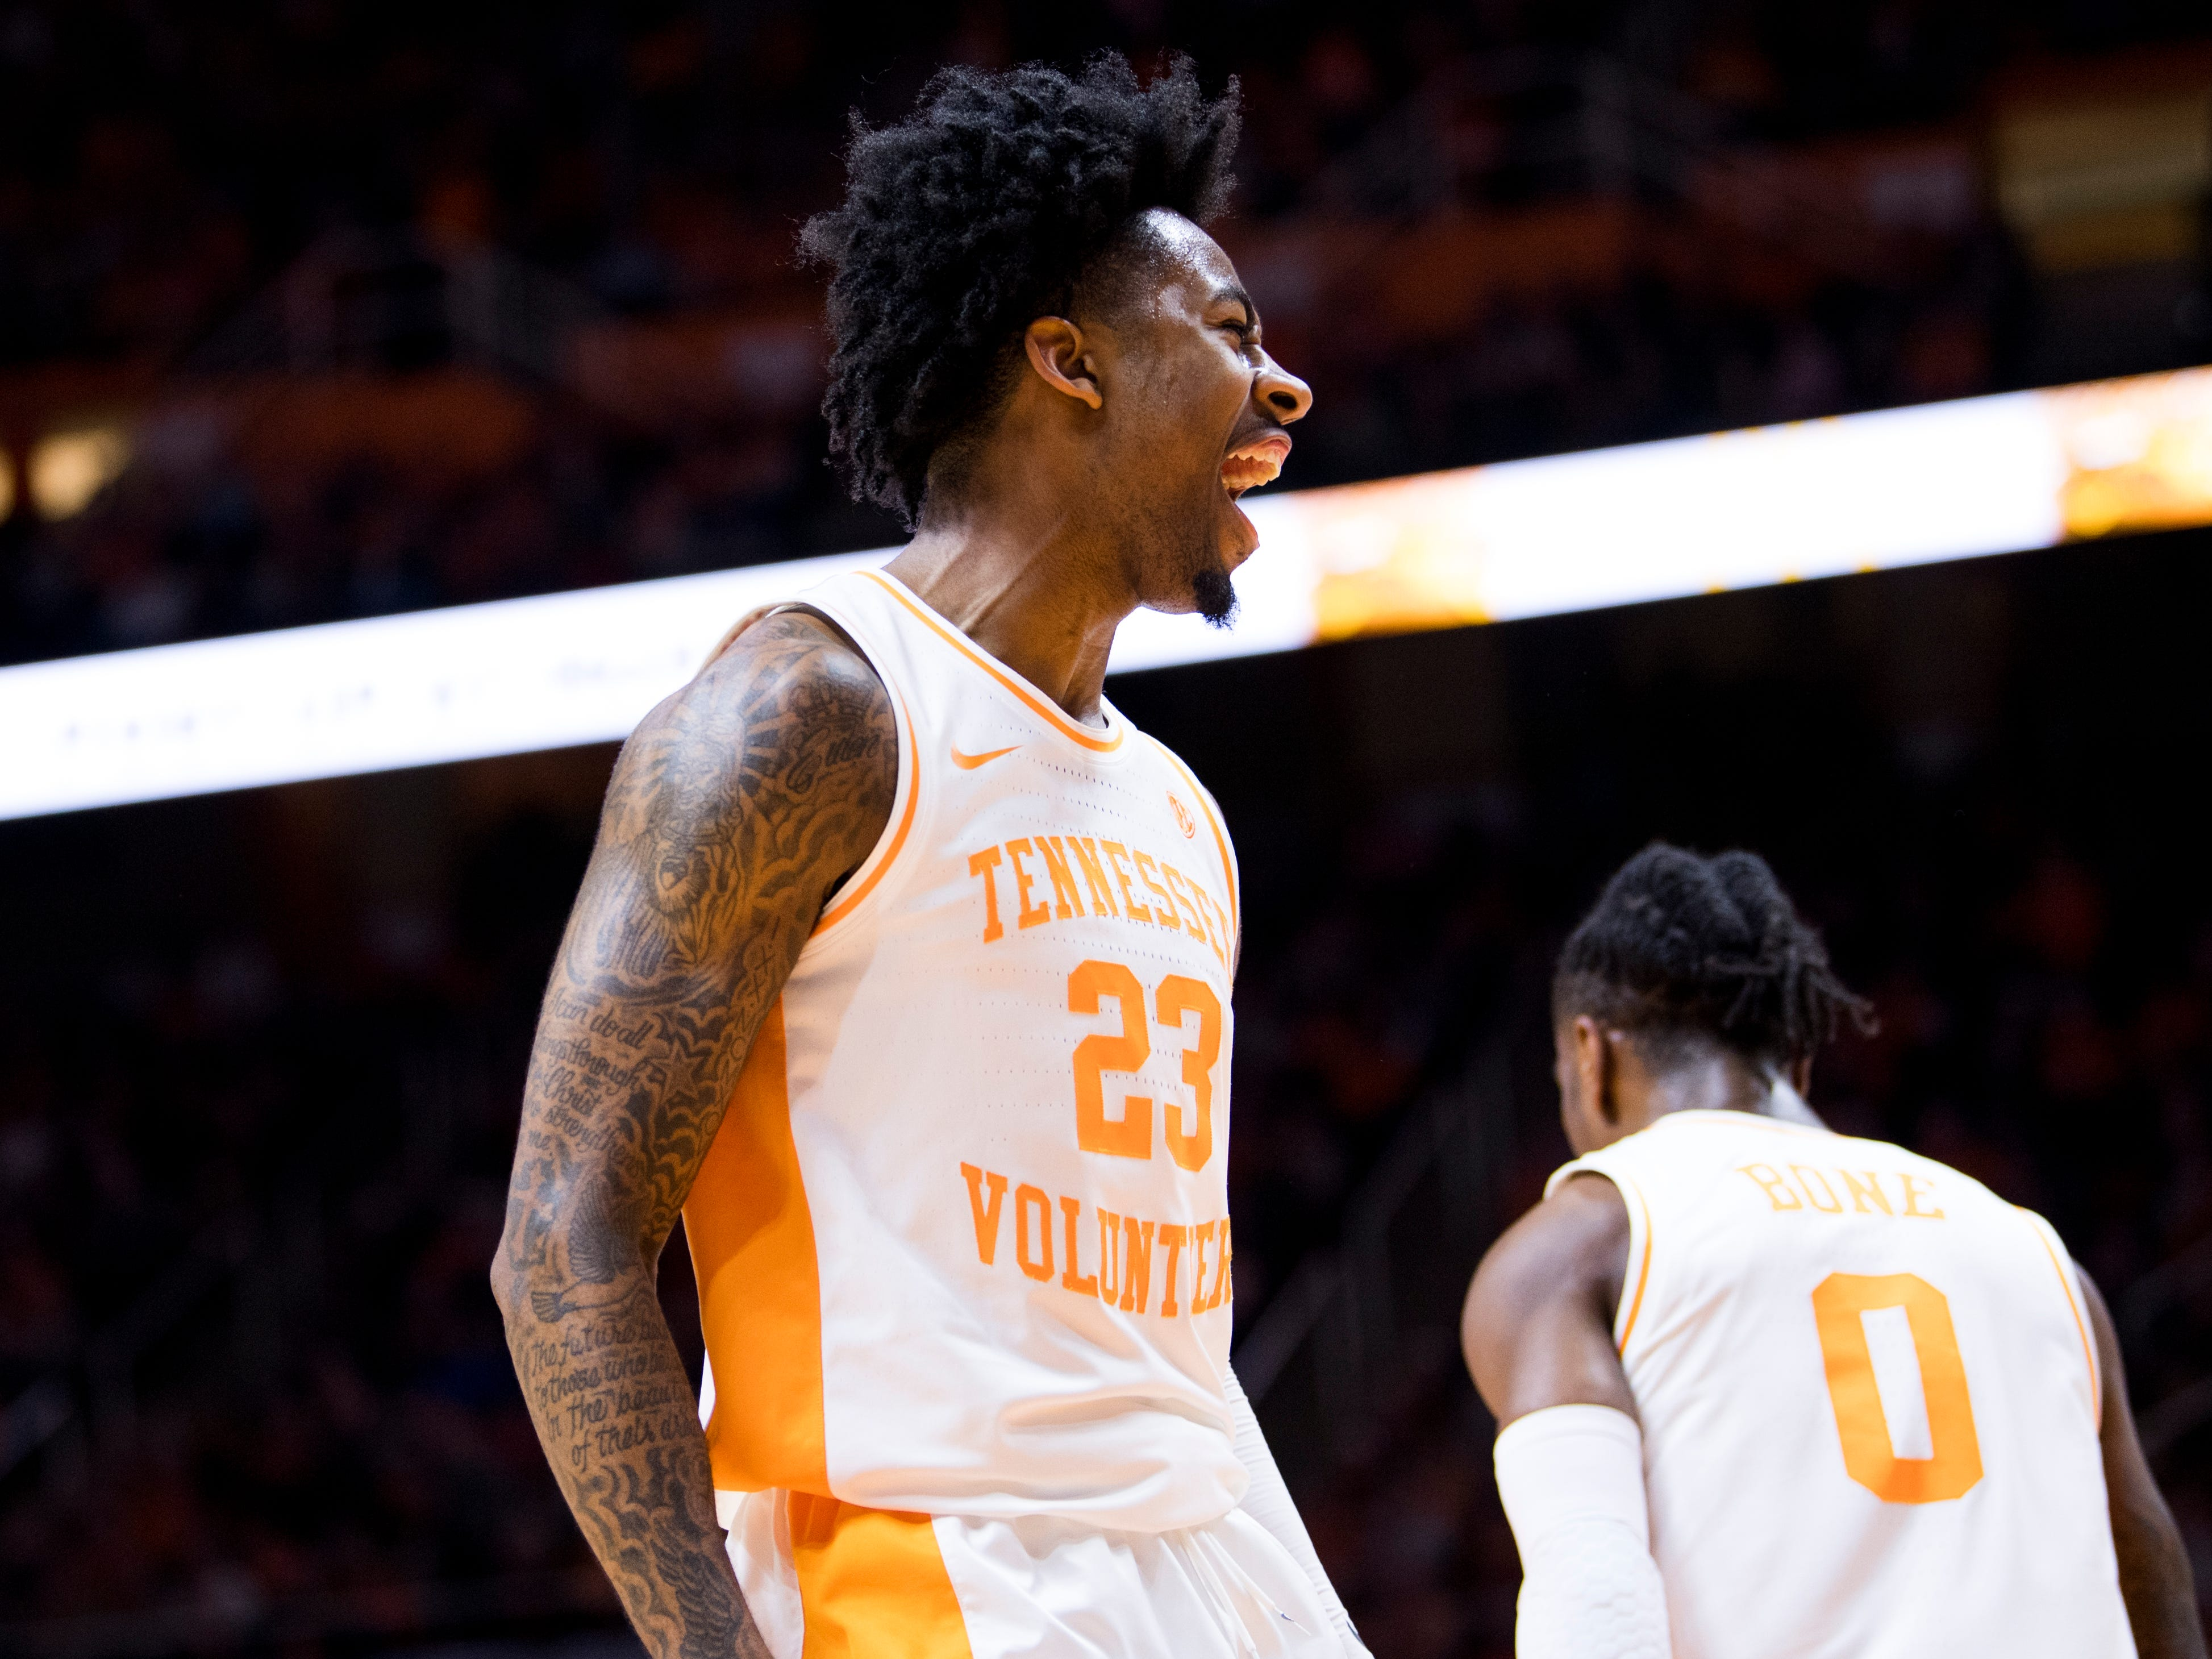 Tennessee guard Jordan Bowden (23) celebrates a dunk by Tennessee guard Jordan Bone (0) during Tennessee's home SEC game against South Carolina at Thompson-Boling Arena in Knoxville on Wednesday, February 13, 2019.